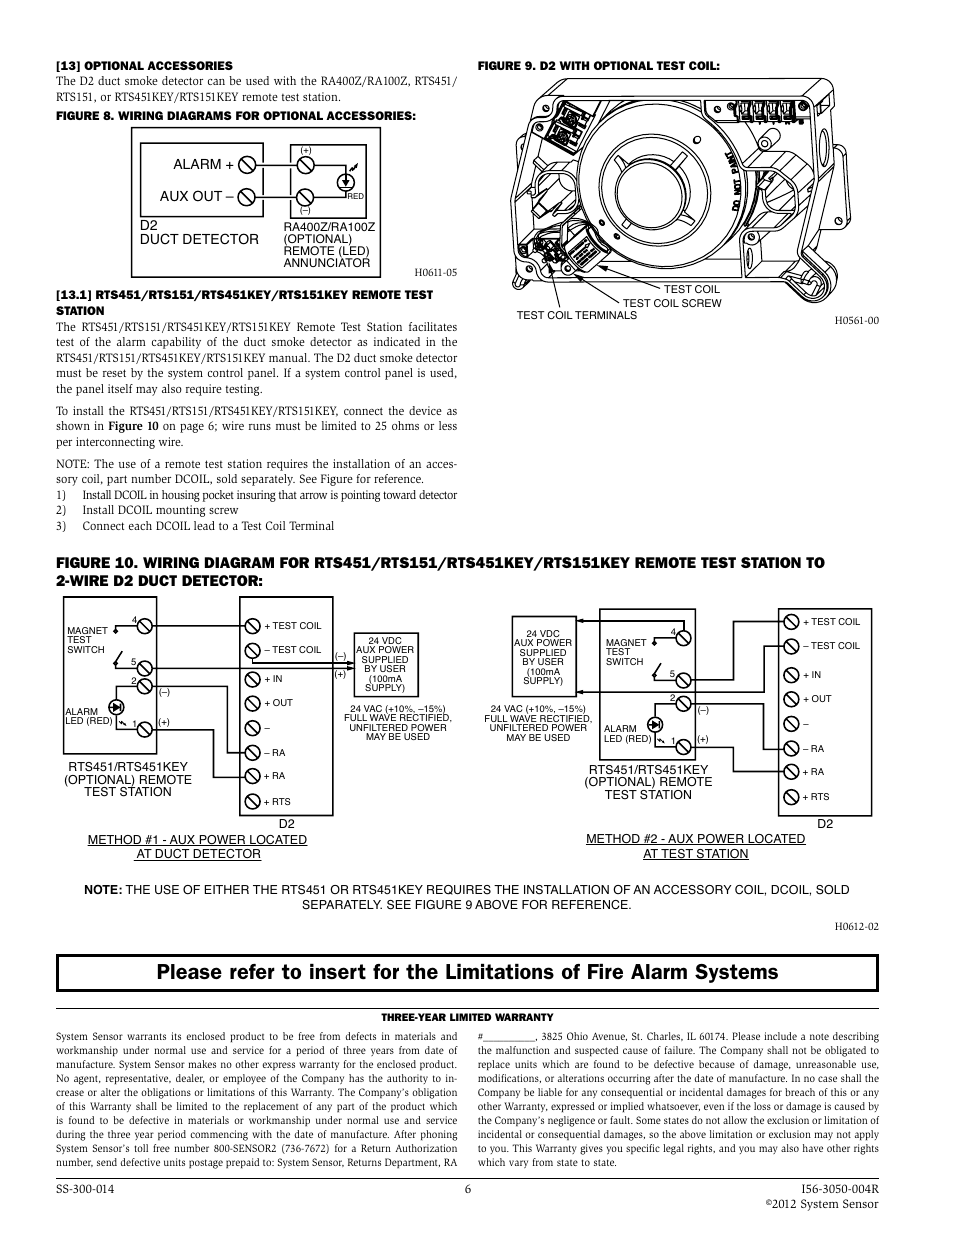 alarm aux out d duct detector system sensor d user manual alarm aux out d2 duct detector system sensor d2 user manual page 6 6